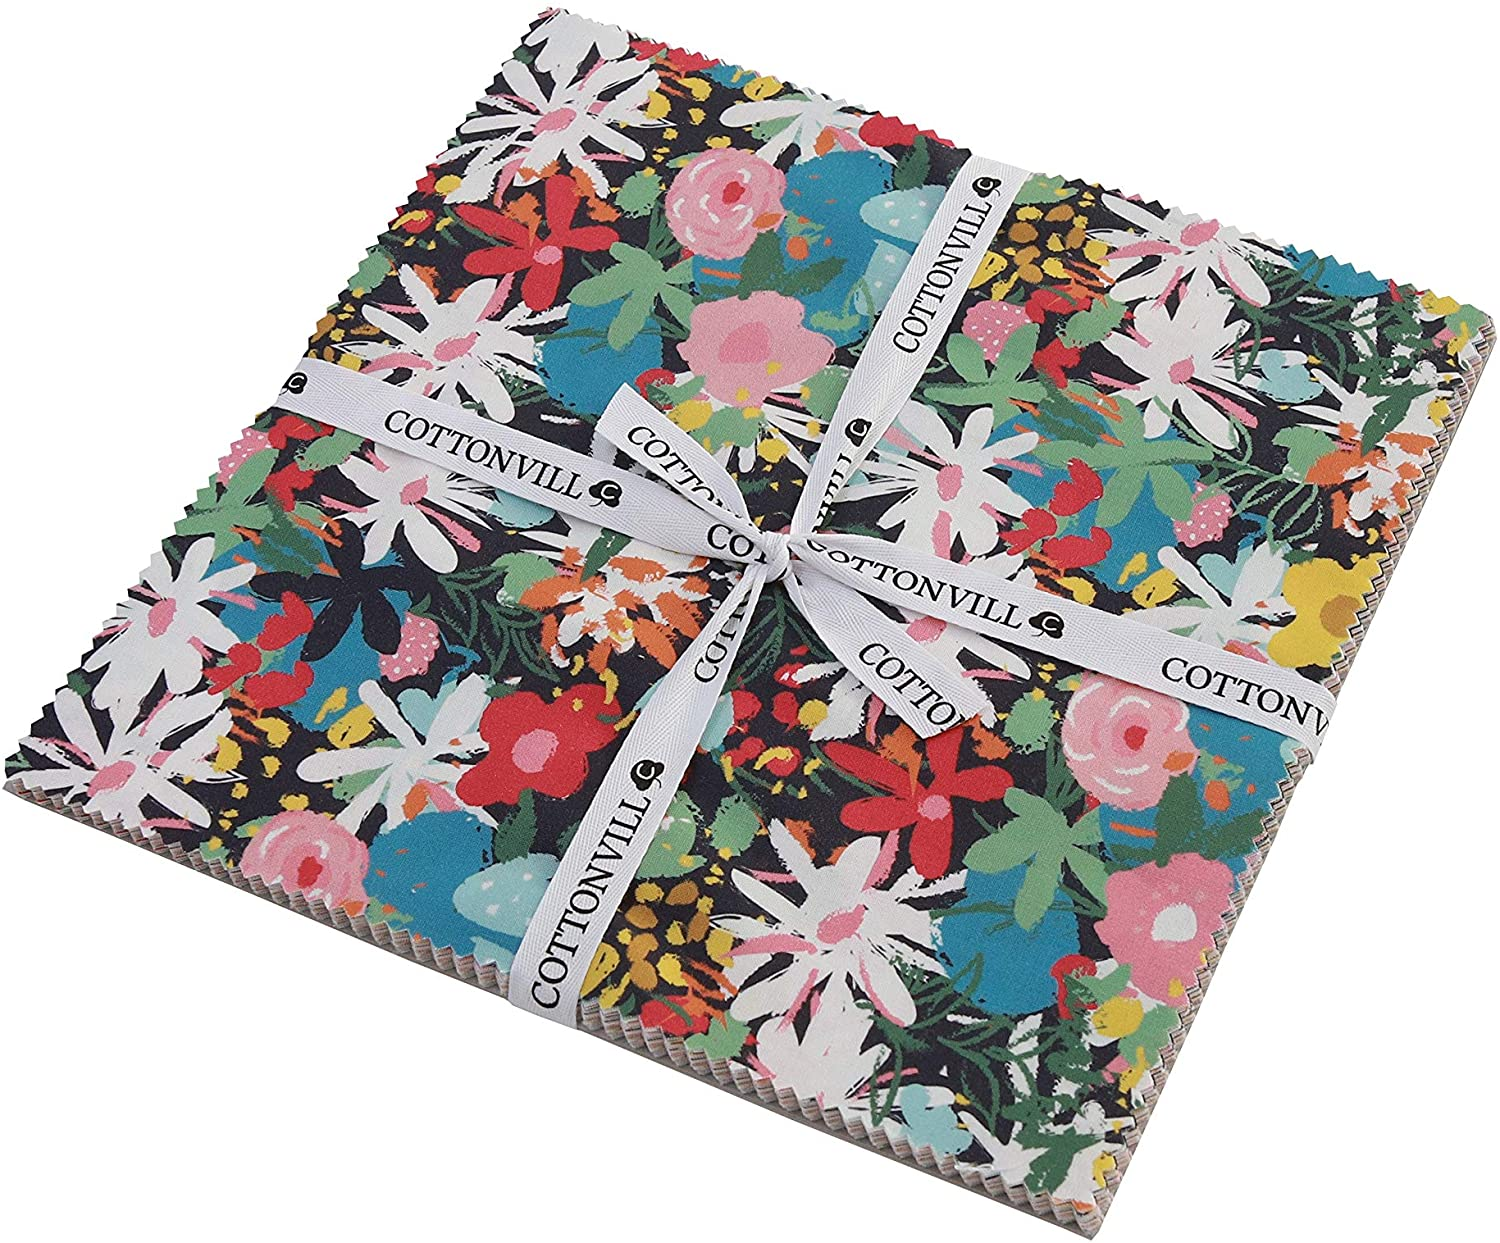 COTTONVILL Collection Bloom 20COUNT Cotton Print Quilting Fabric (Precuts, 10inch 24pc)